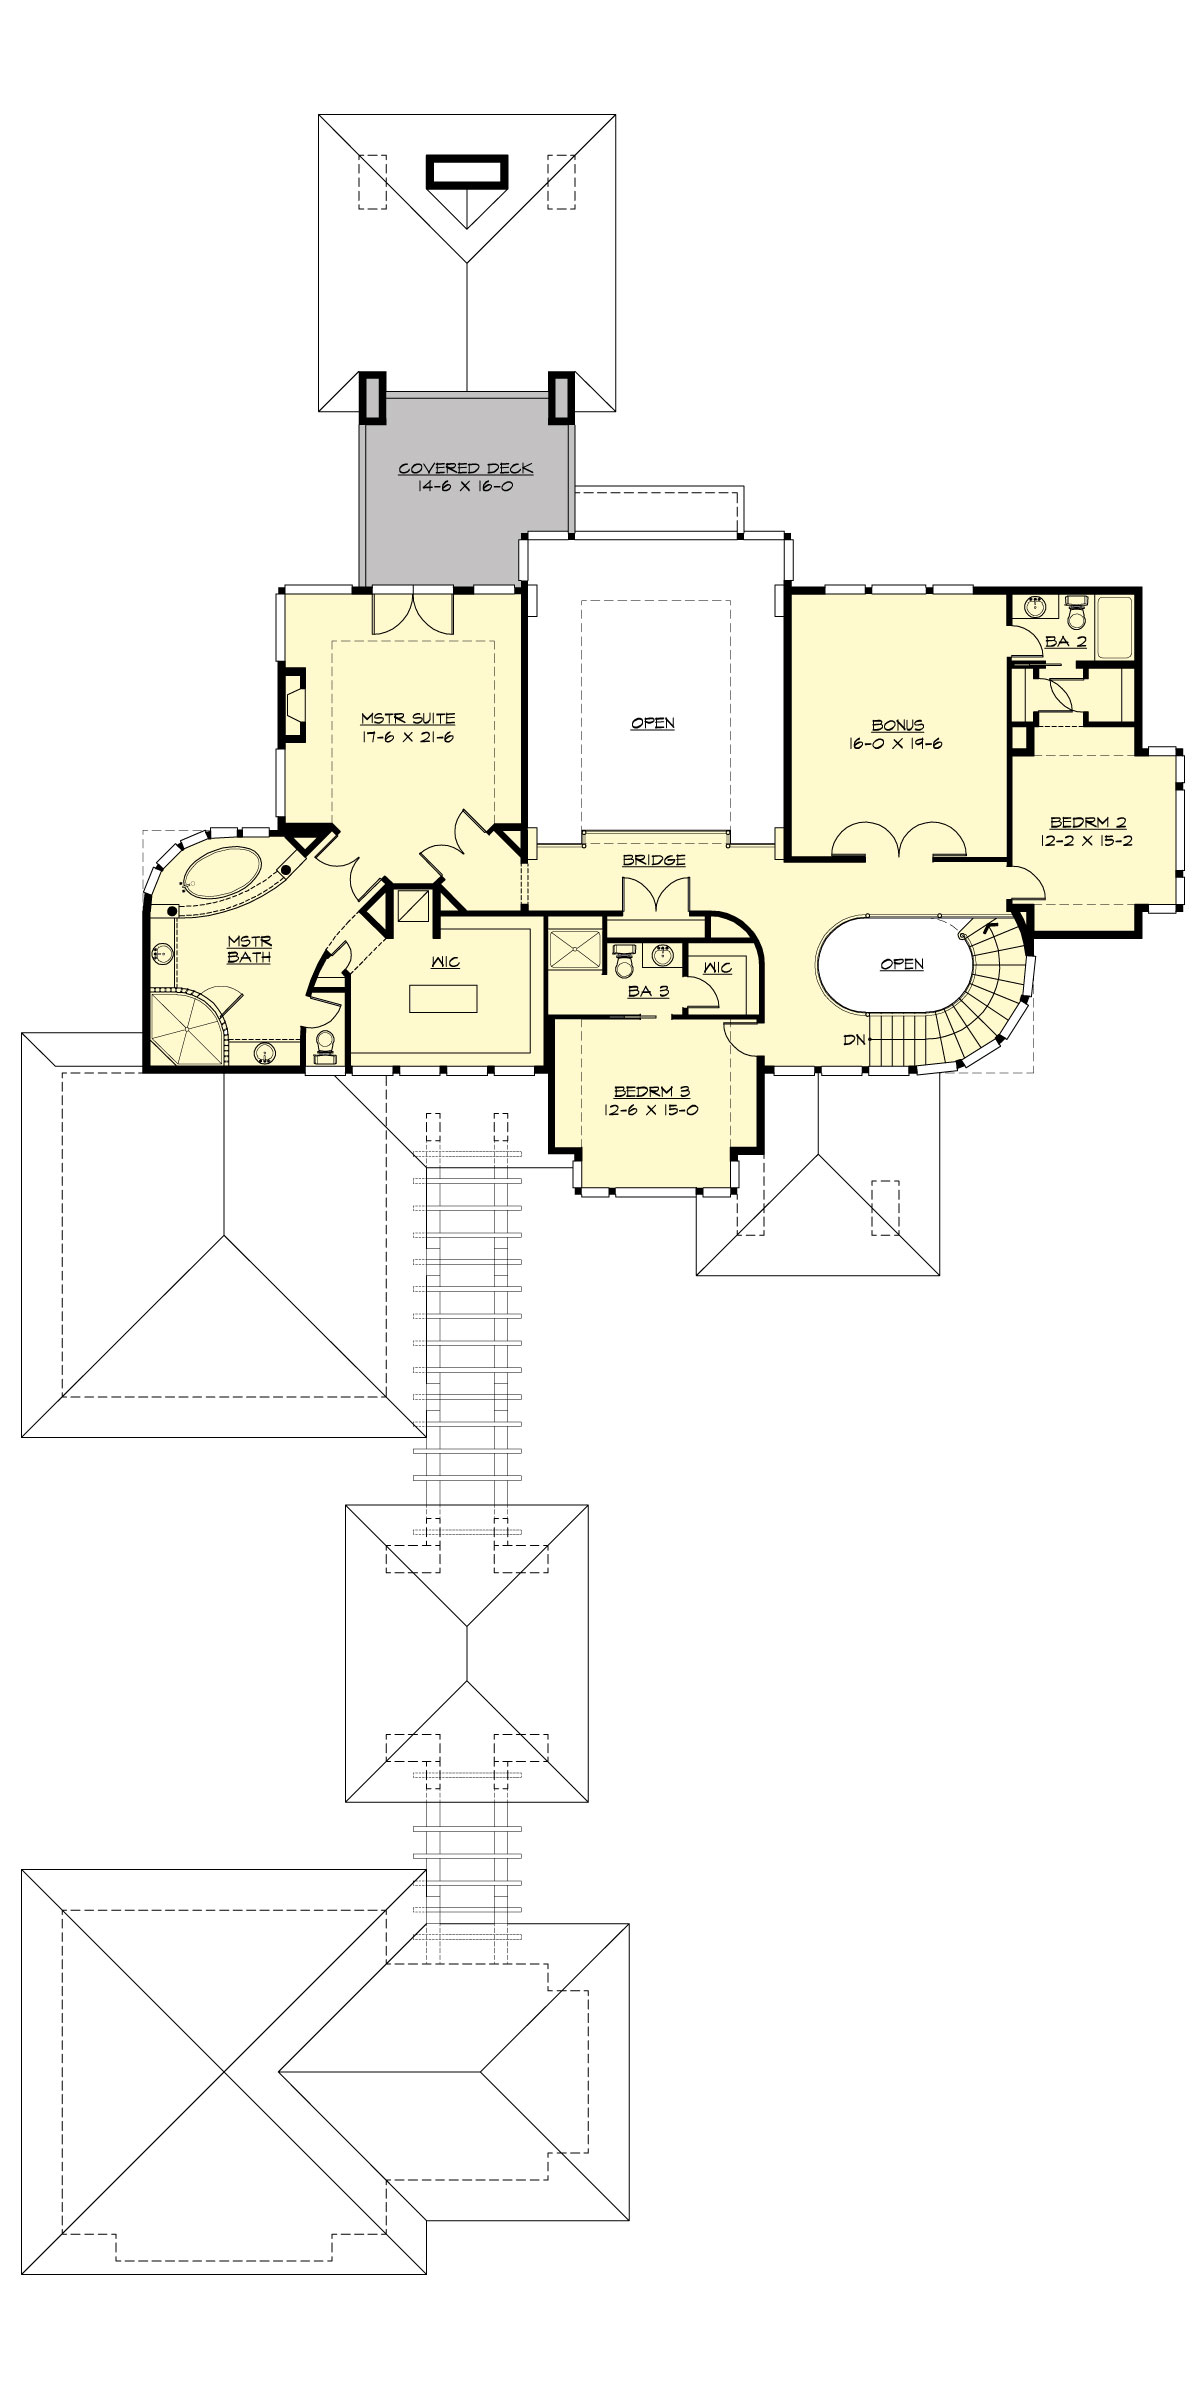 Upper Floor image of Featured House Plan: PBH - 3346